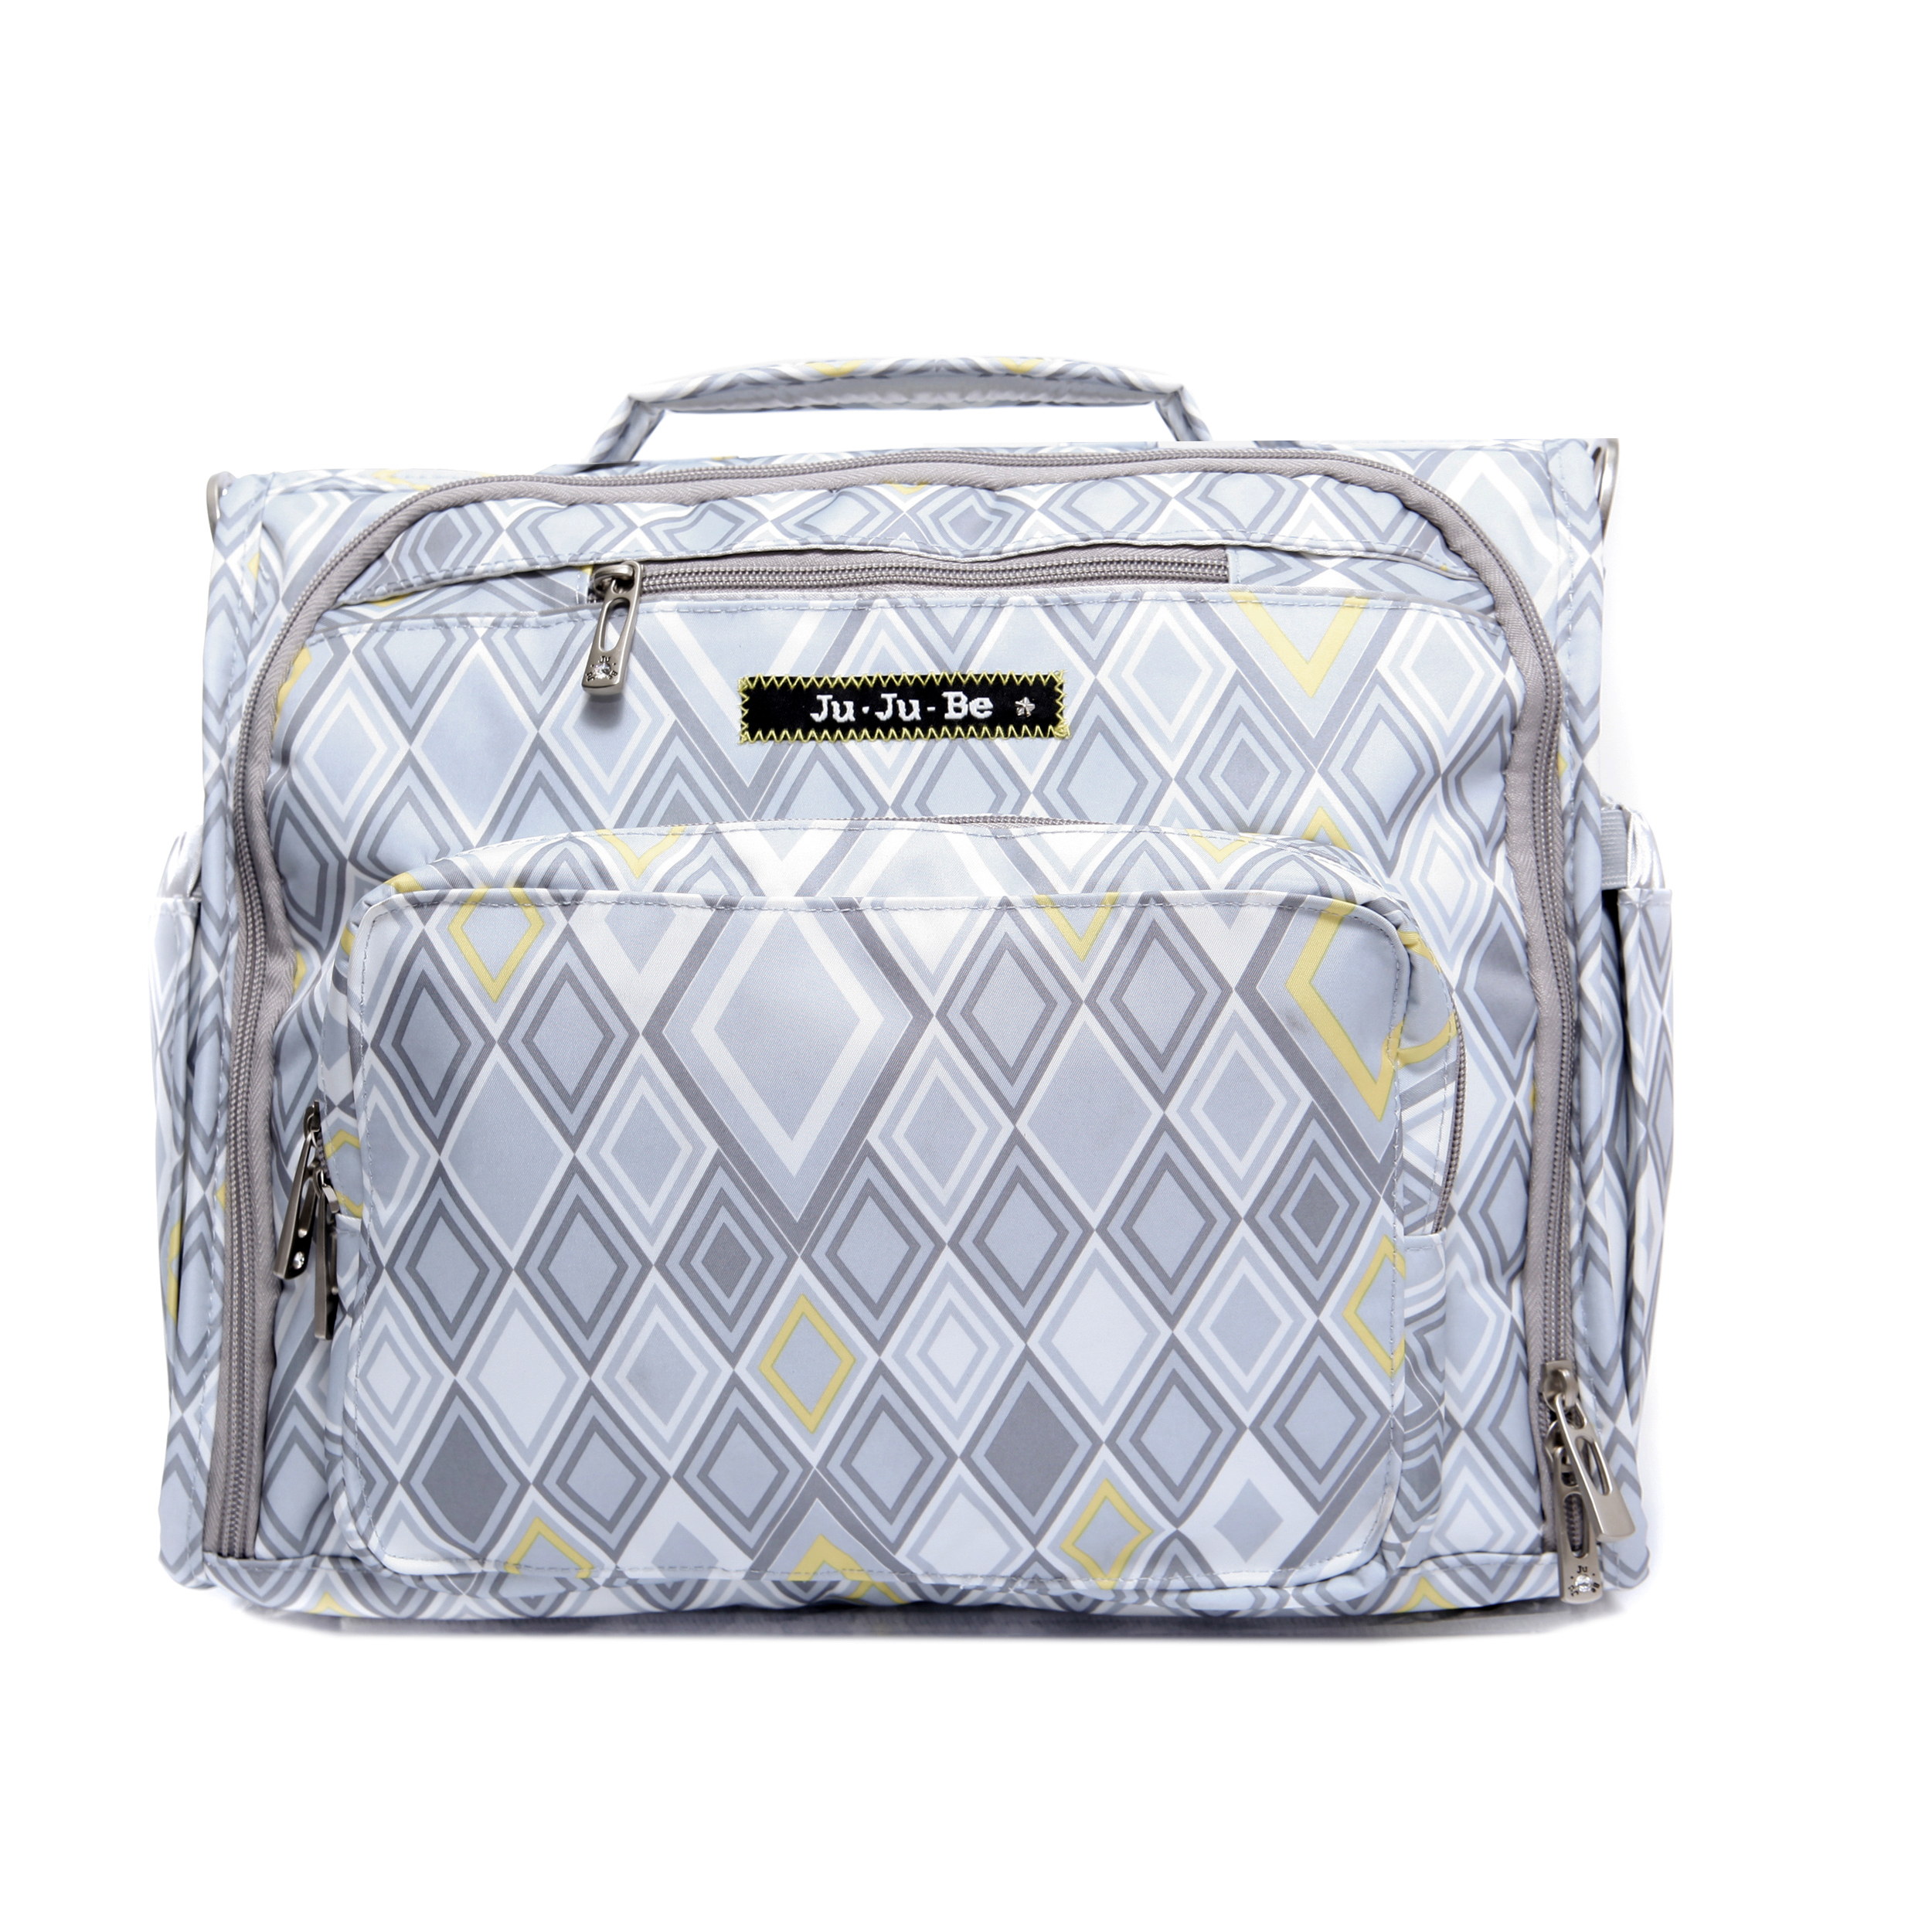 jujube diaper bag bff - silver ice